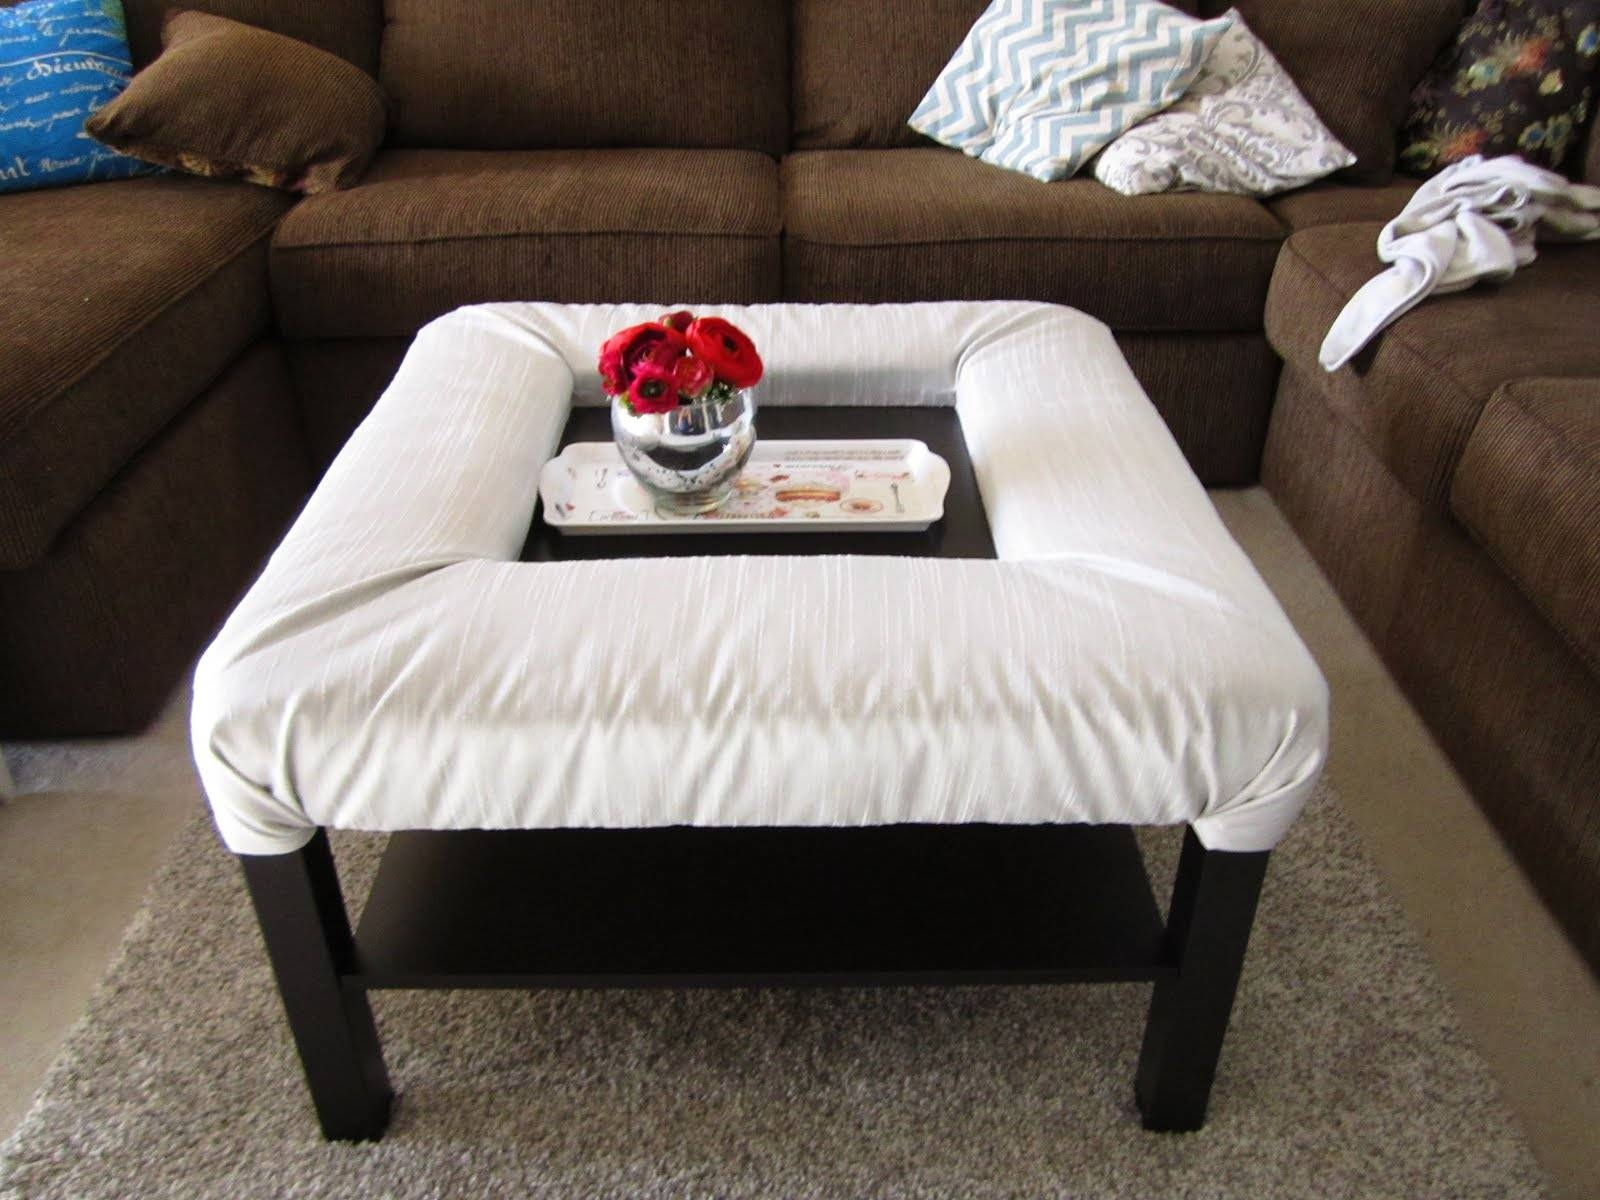 Lack Coffee Table With Footrest - Ikea Hackers - Ikea Hackers throughout Coffee Table Footrests (Image 21 of 30)